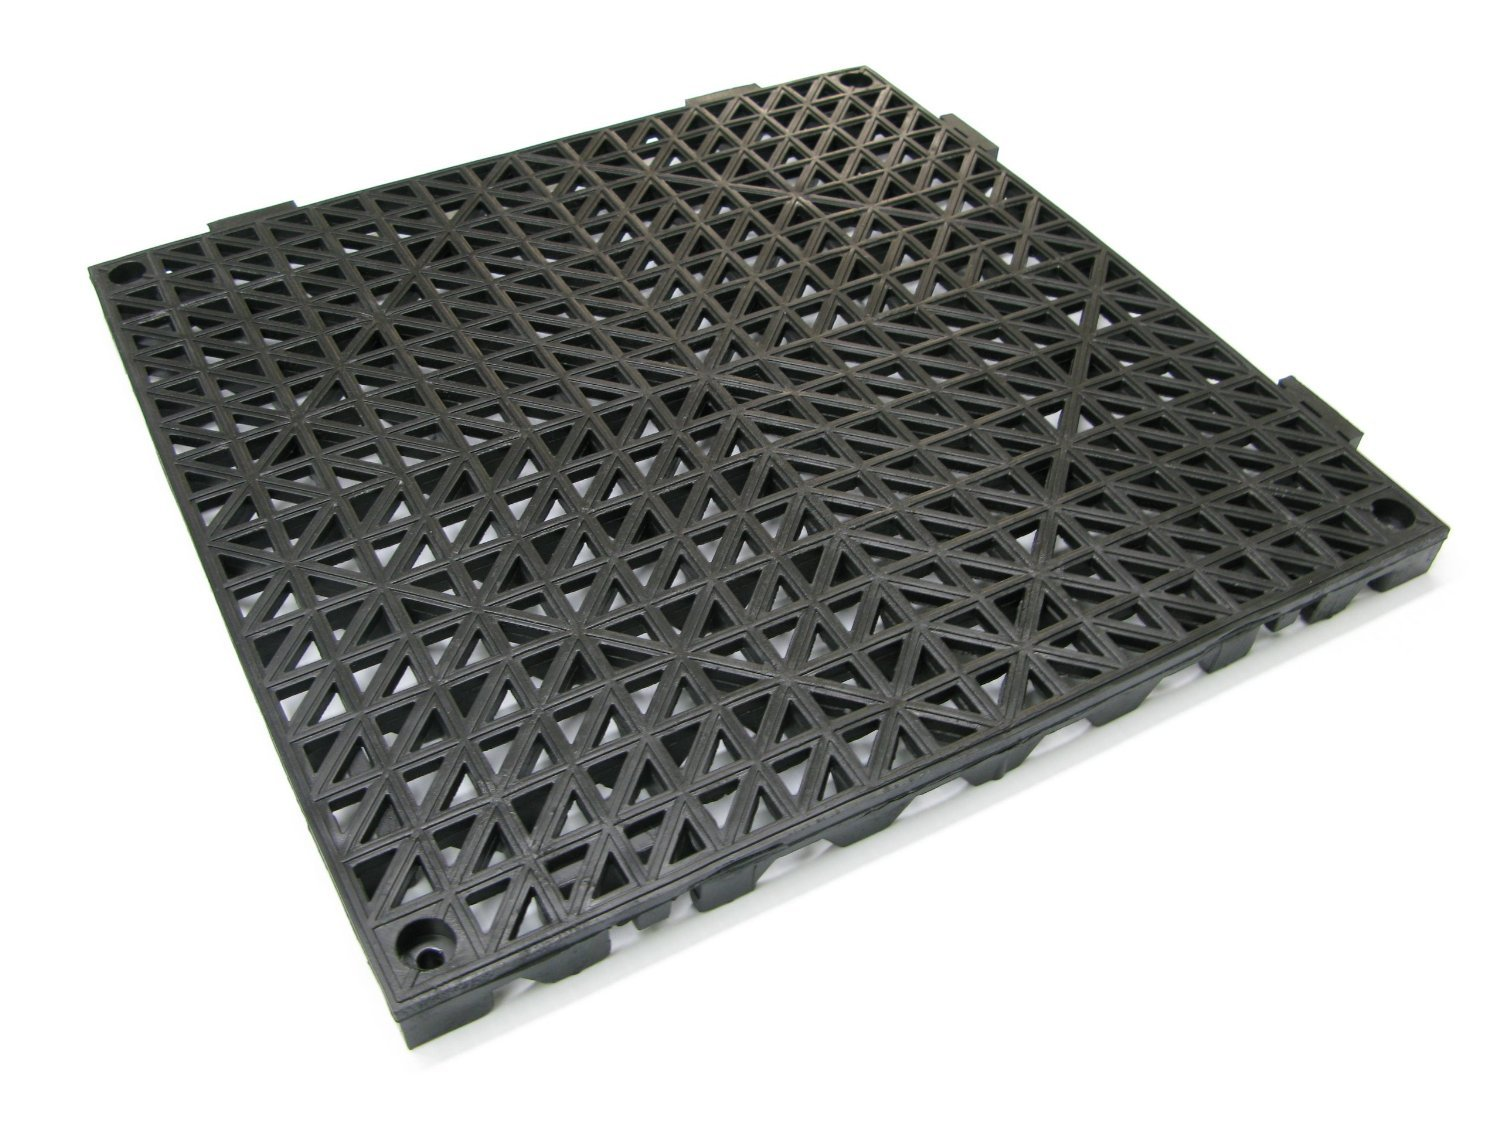 American Floor Mats 12'' x 12'' x 3/4'' PVC Safety Shower Lab Tile Black 12 Pack - 3' x 4' area